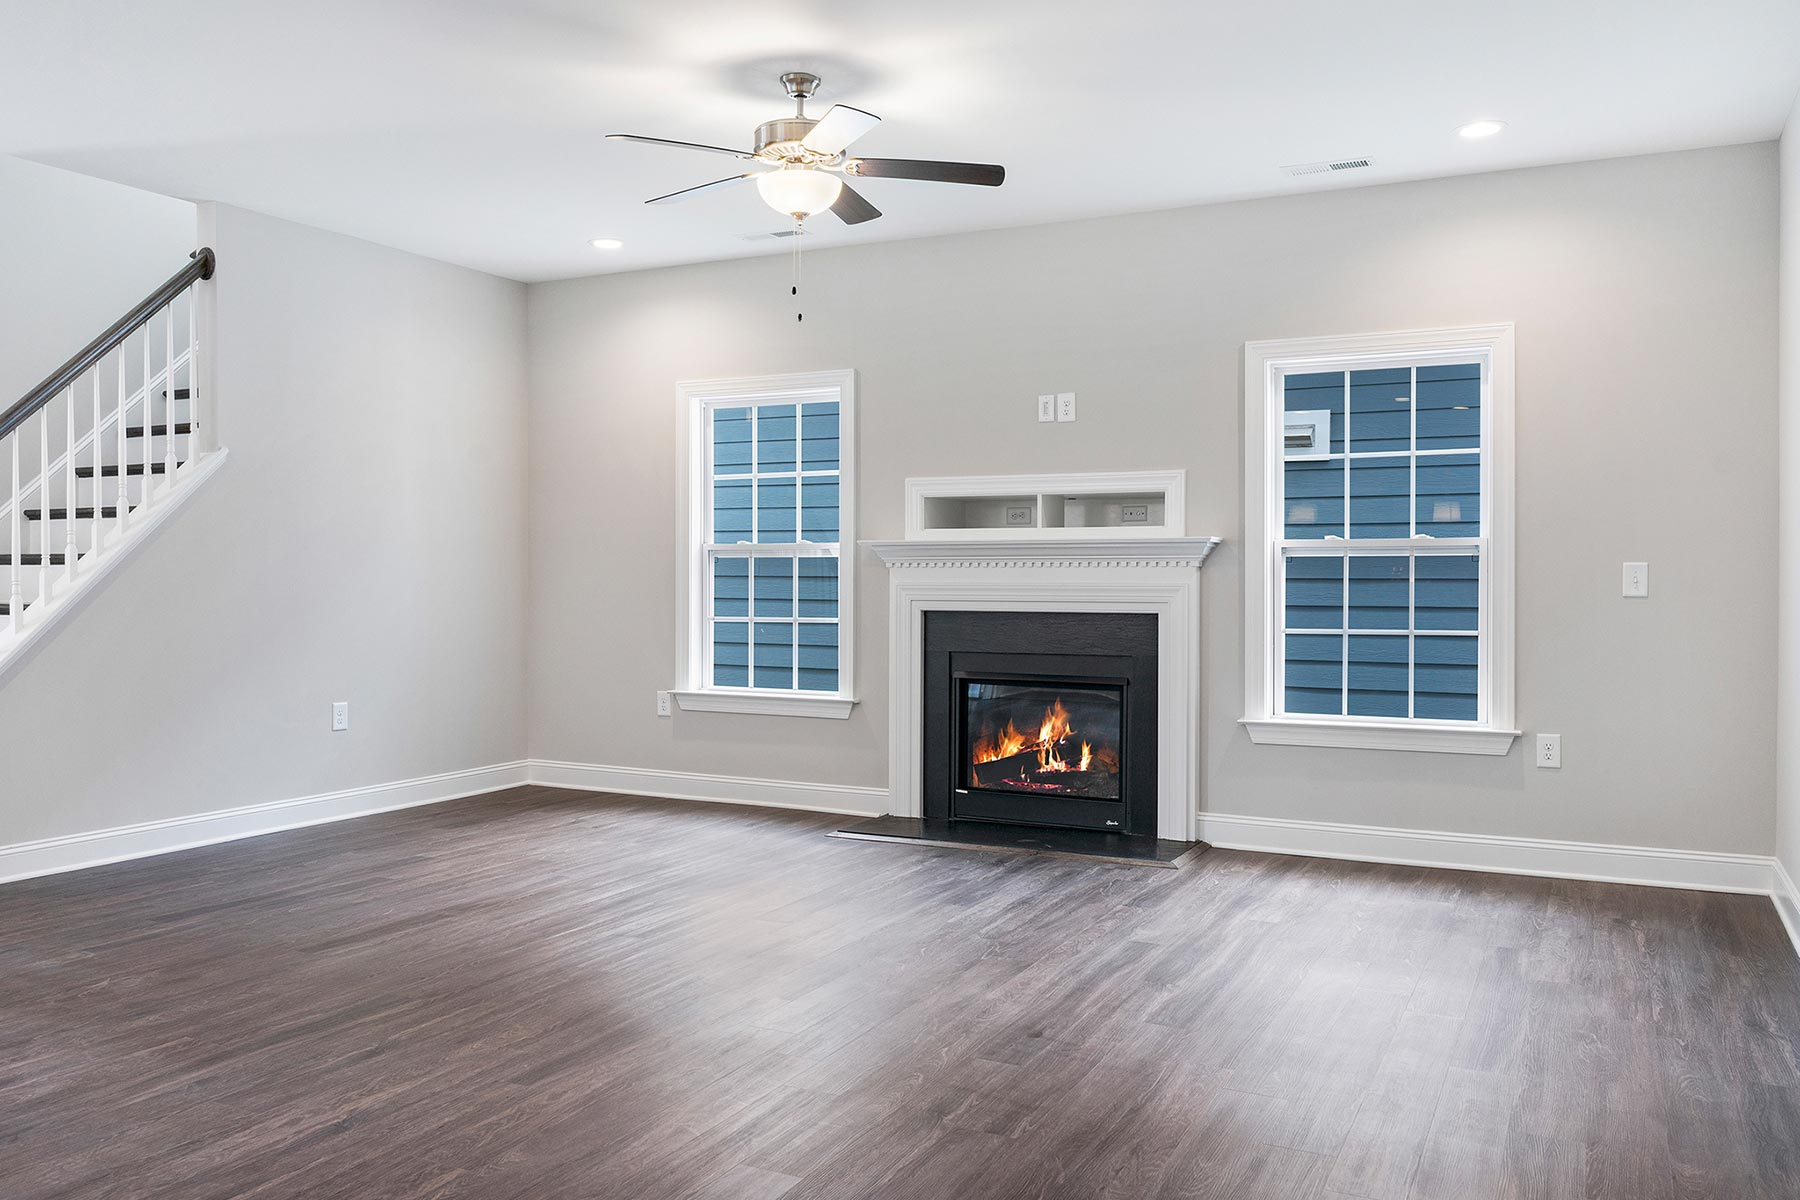 Carlisle Plan Greatroom at Wendell Falls in Wendell North Carolina by Mattamy Homes